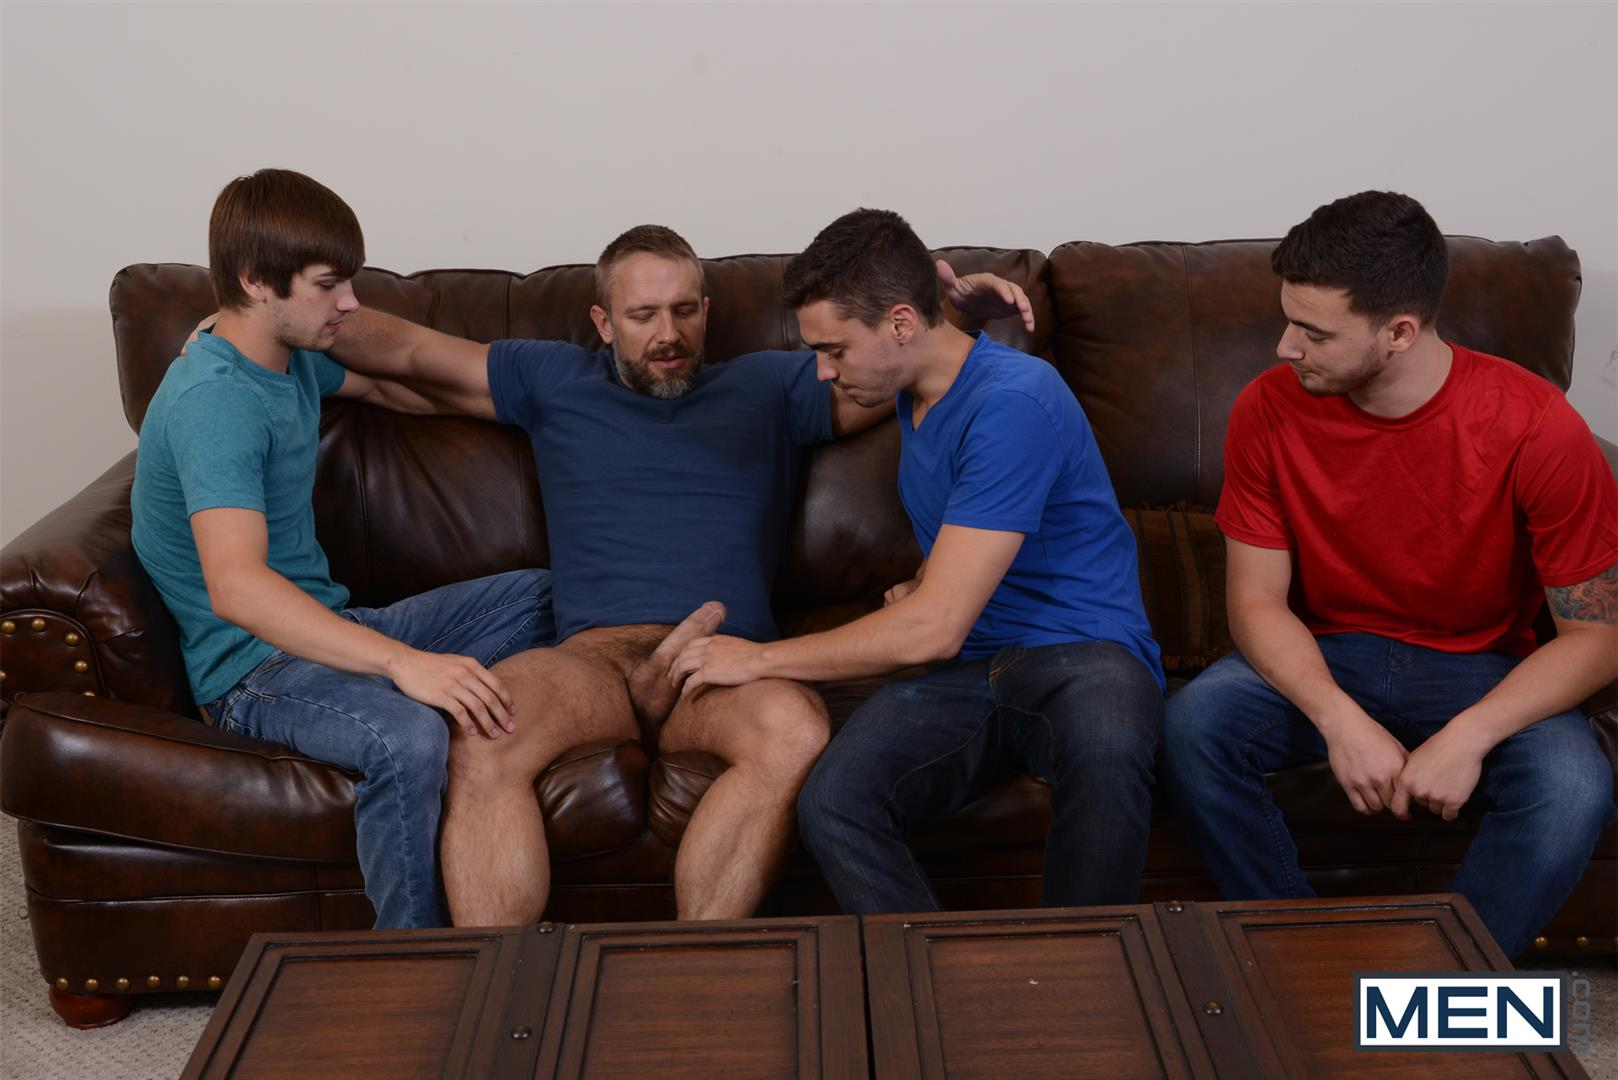 Gay cup cum boys sex download mobile free 6